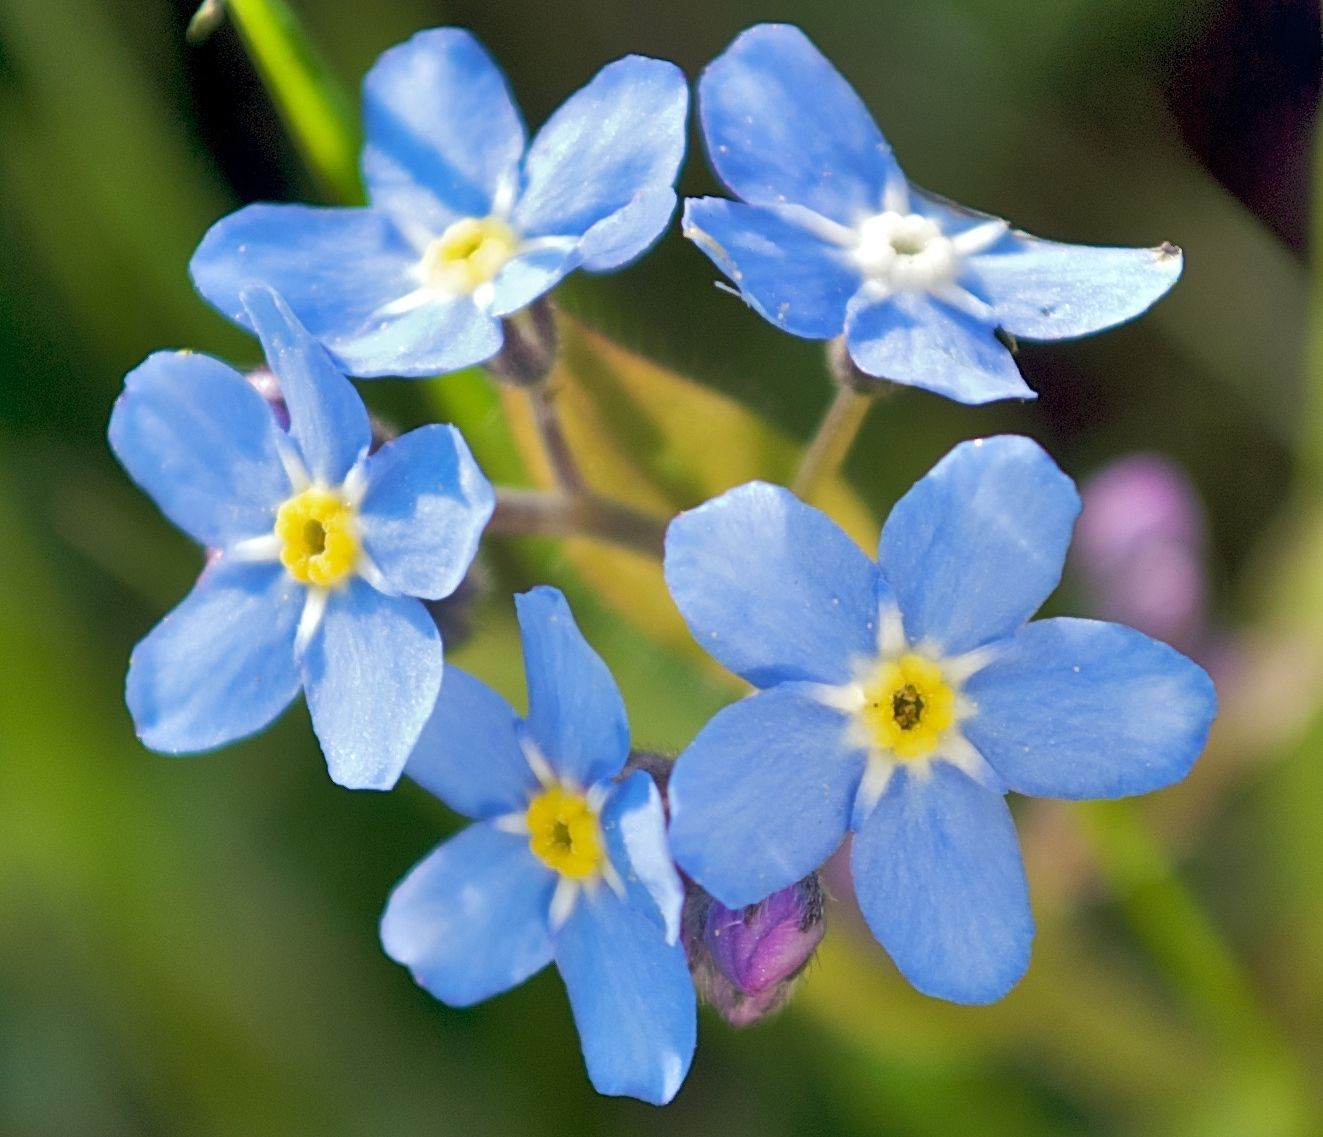 Primary image for SHIPPED From US, FORGET ME NOT FLOWER SEEDS 100 FRESH SEEDS*FREE SHIPPING-SPM